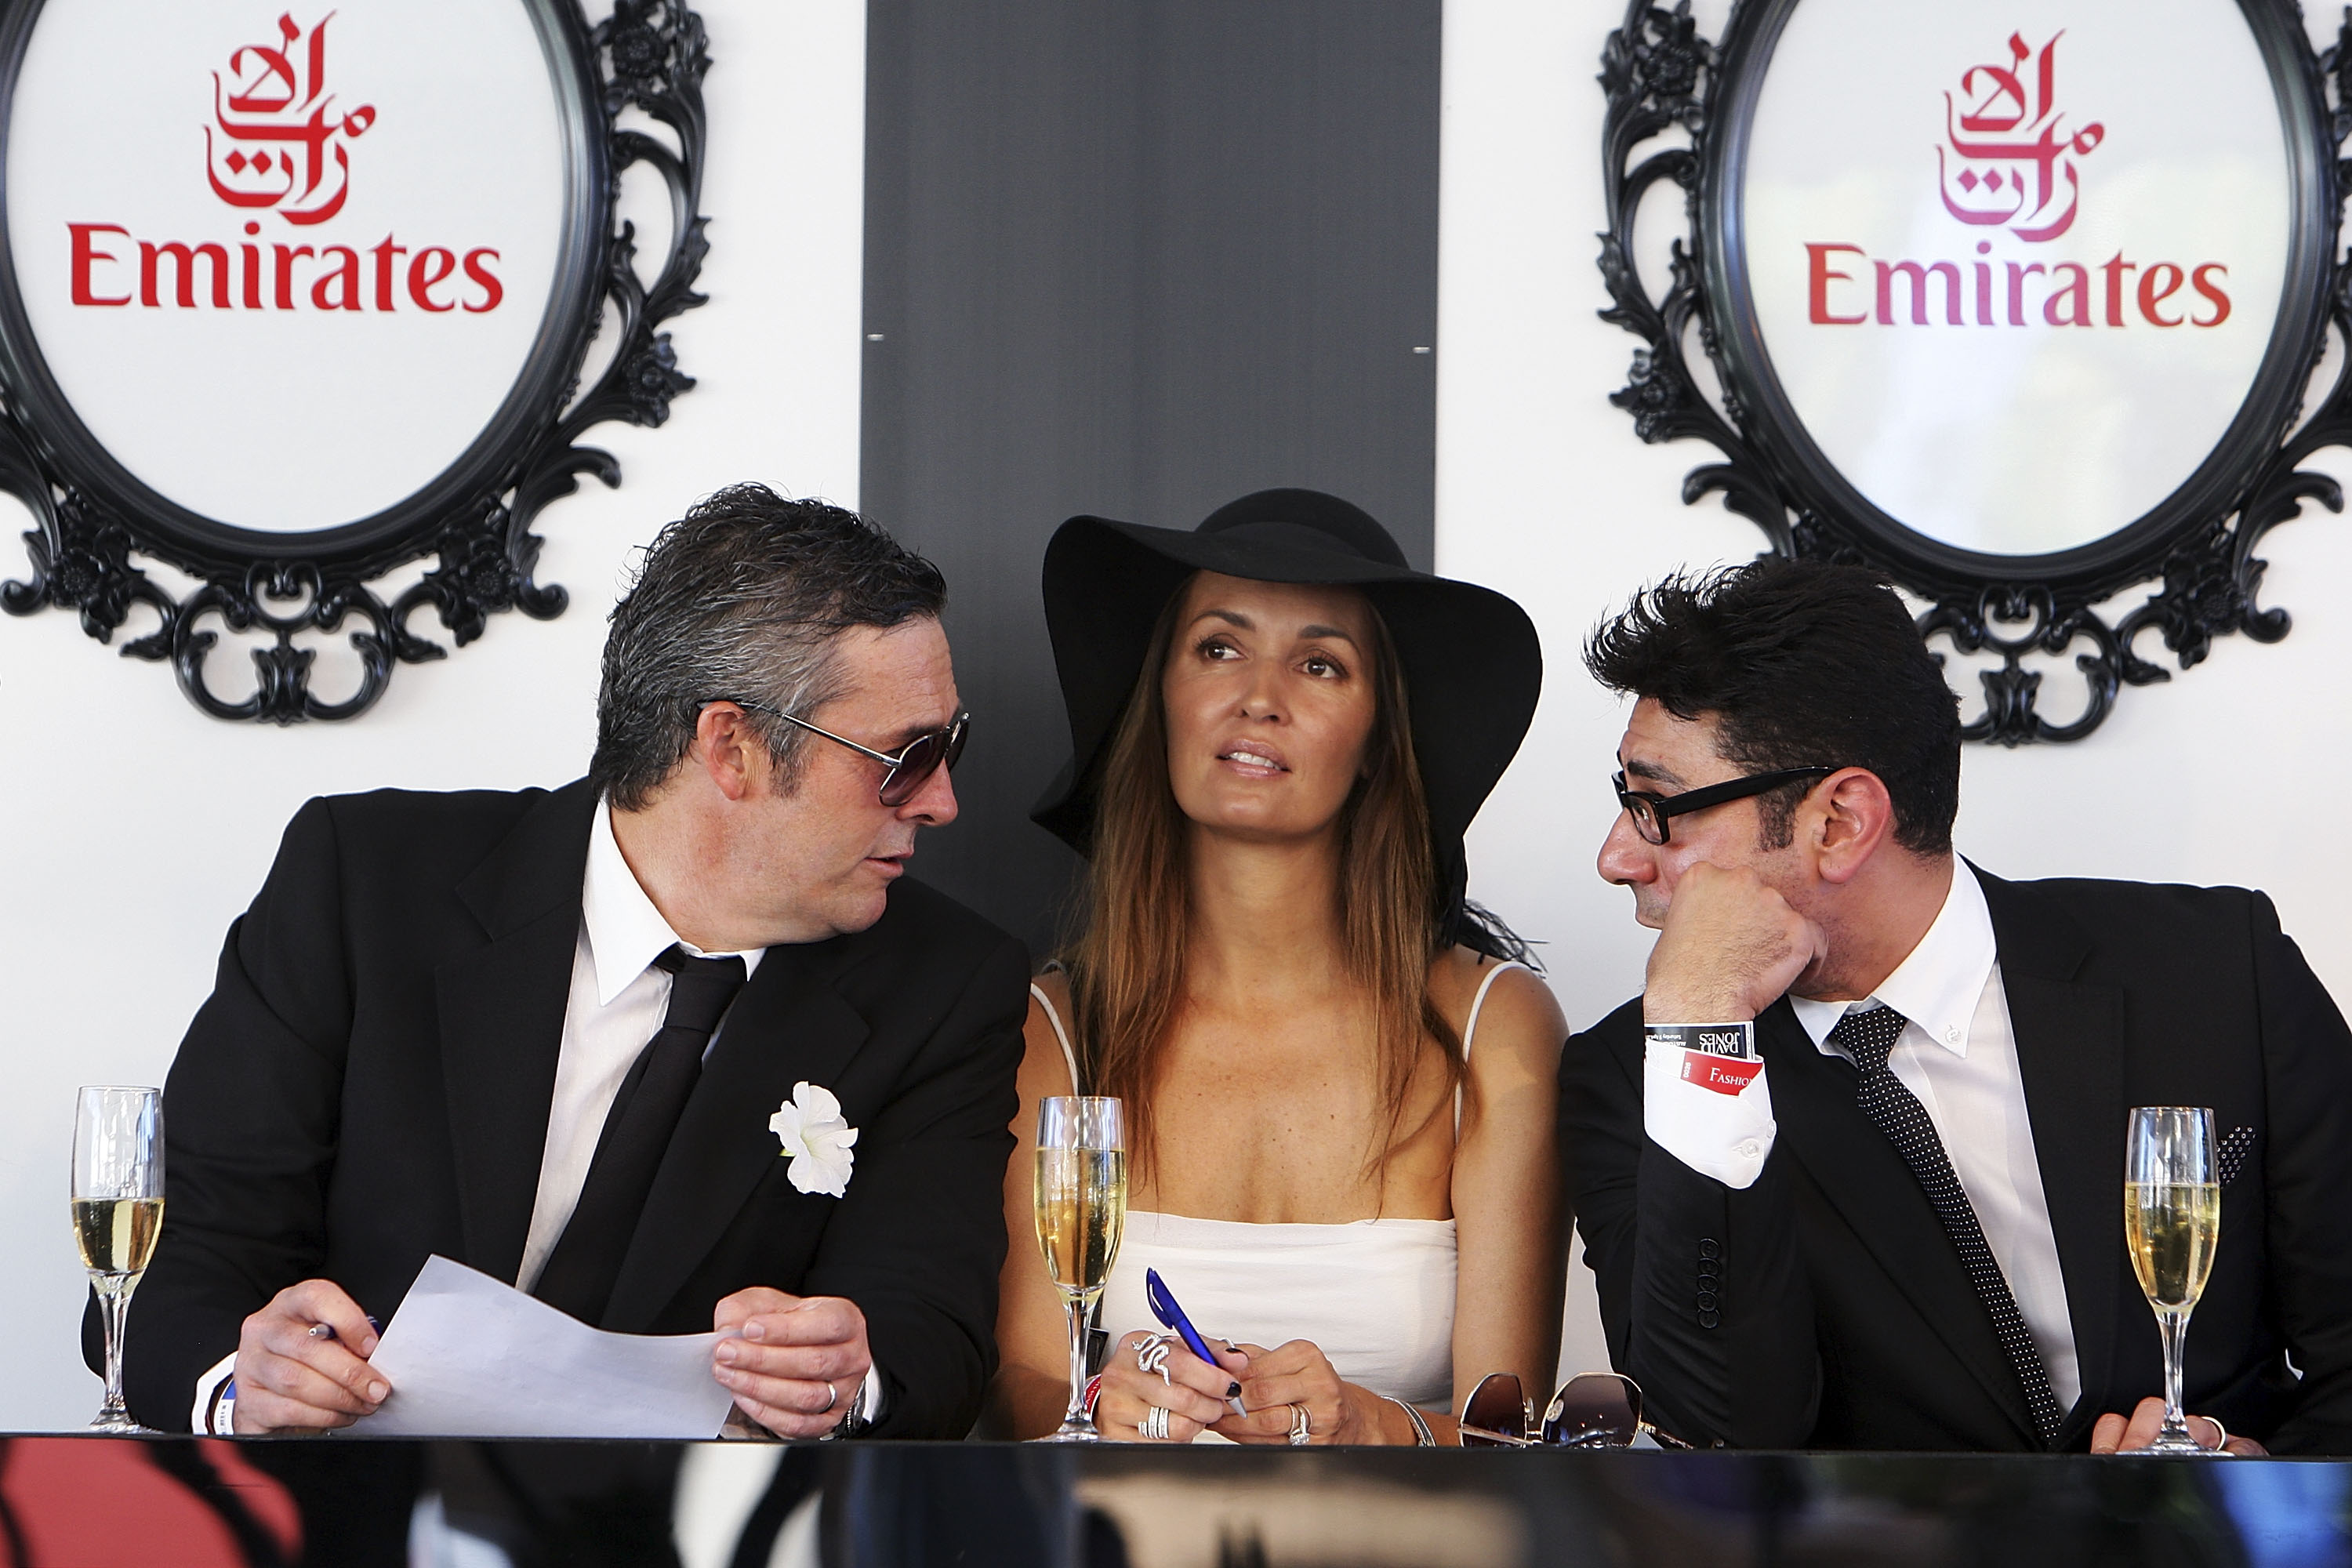 Gail Elliot ponders the Derby Day Fashions on the Field judging panel session.